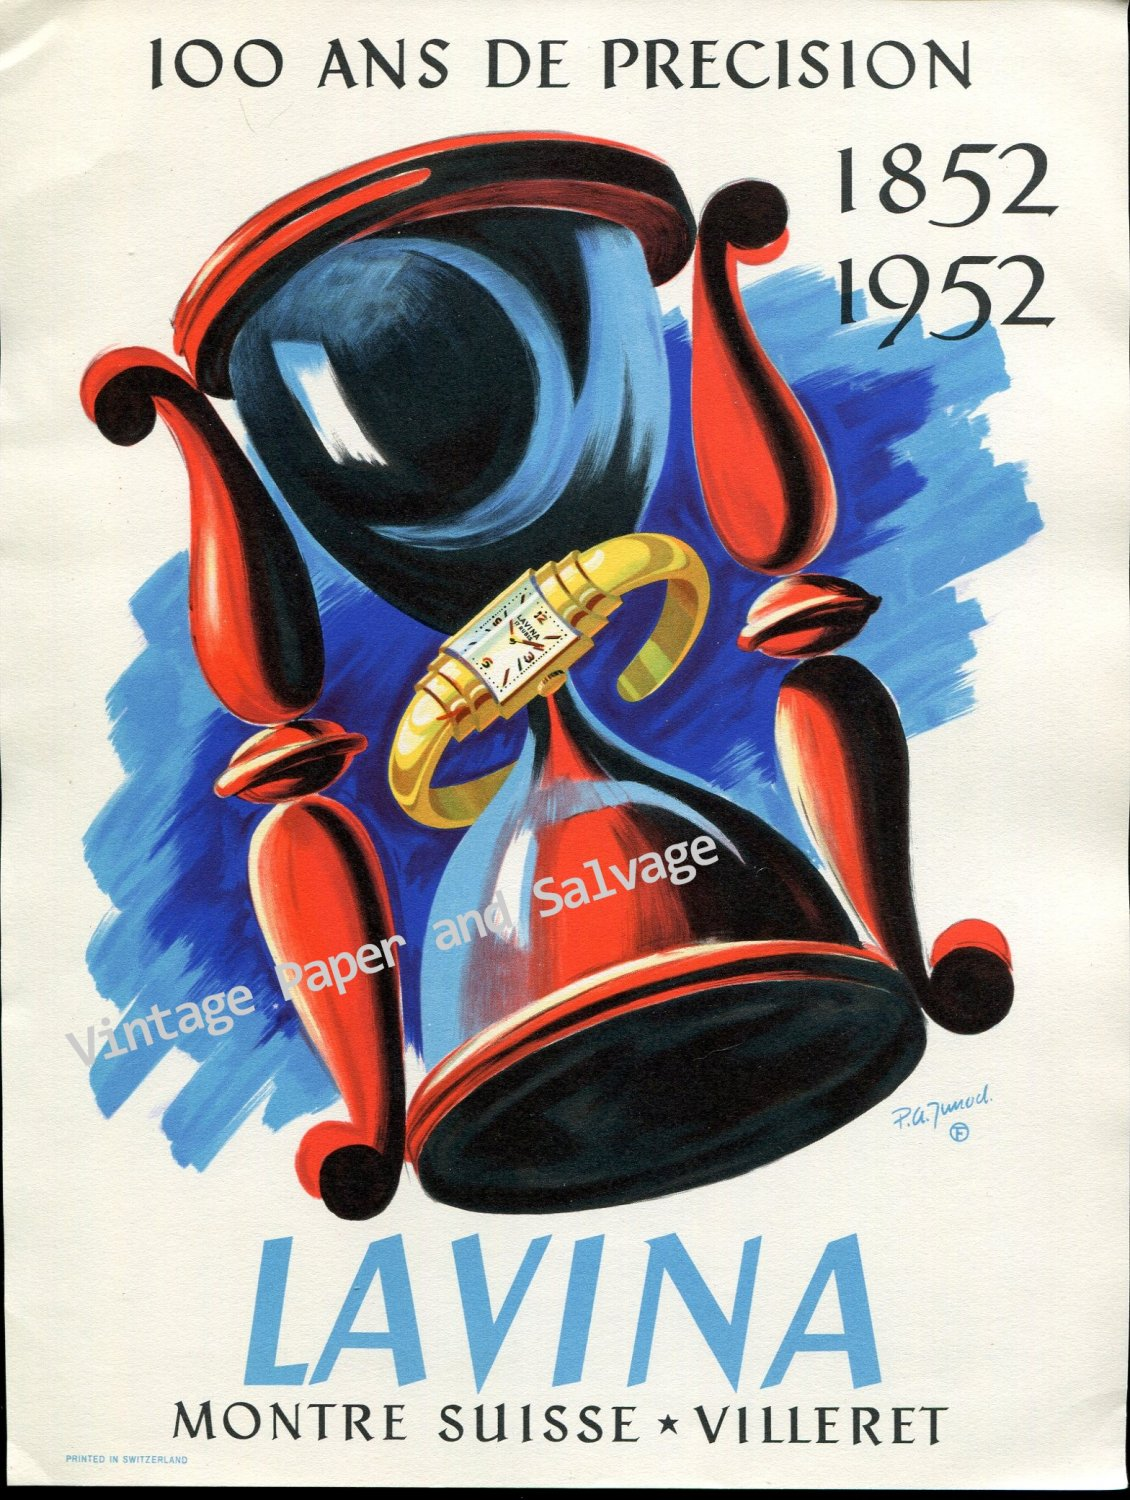 Vintage 1952 Lavina Watch Company Switzerland 100 Year Anniversary Swiss Print Ad AdvertSuisse